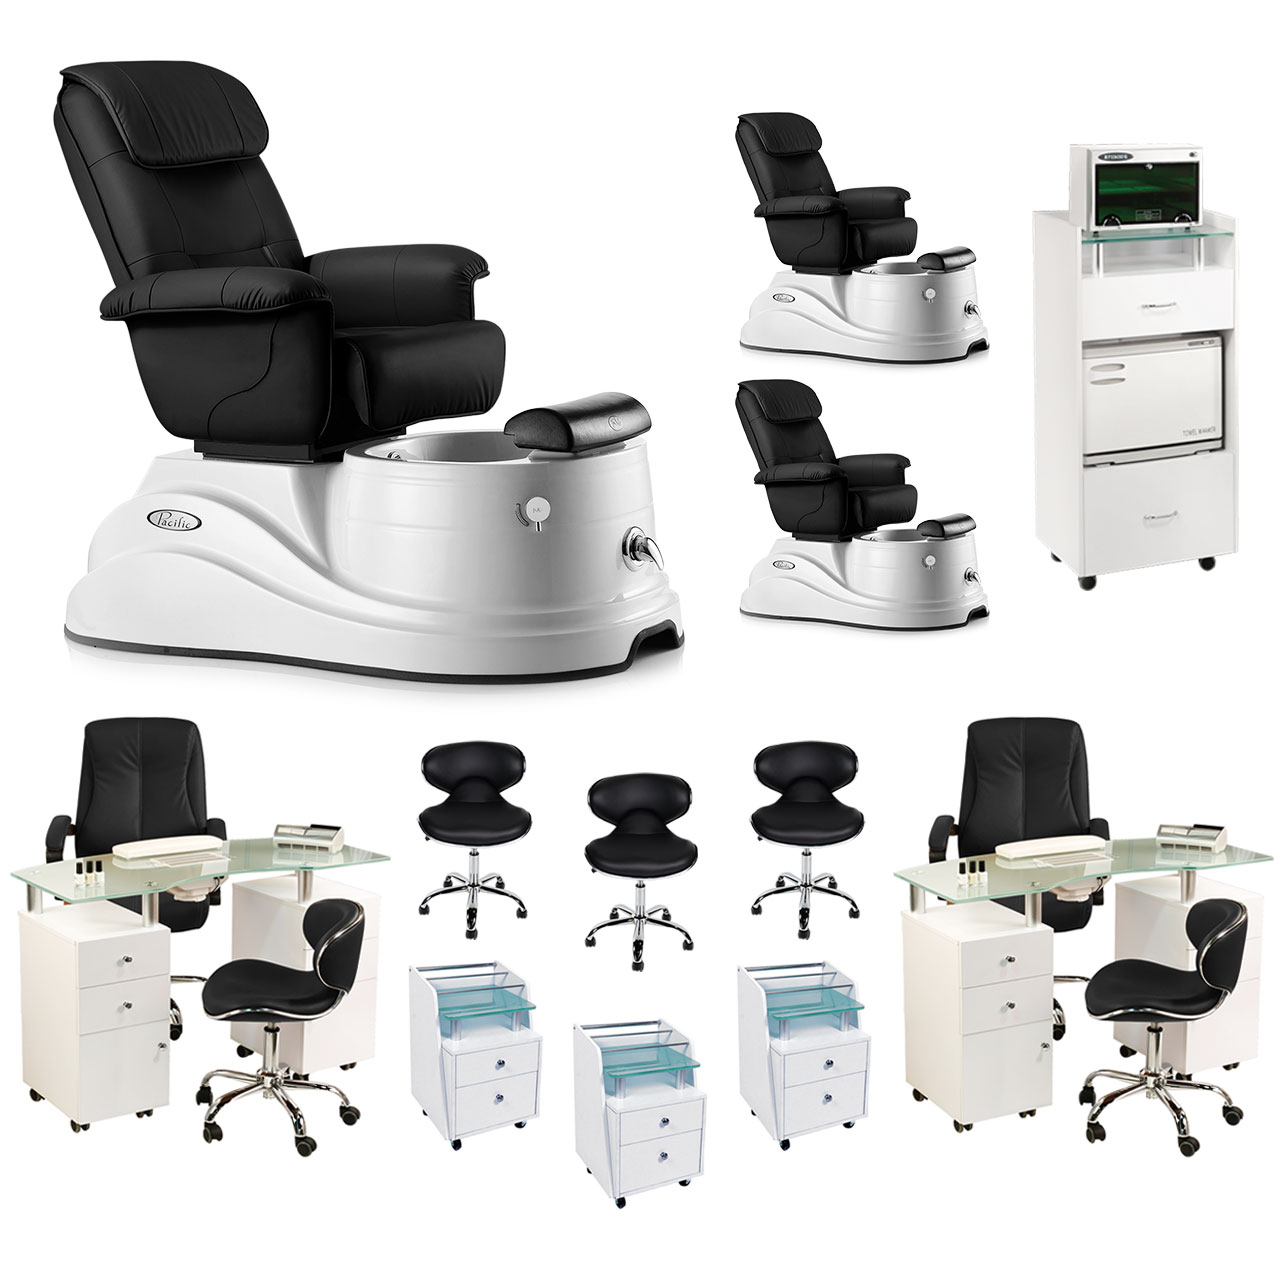 Black 3 Pacific DS Pedicure Chair Package & 2 Manicure Stations  main product image